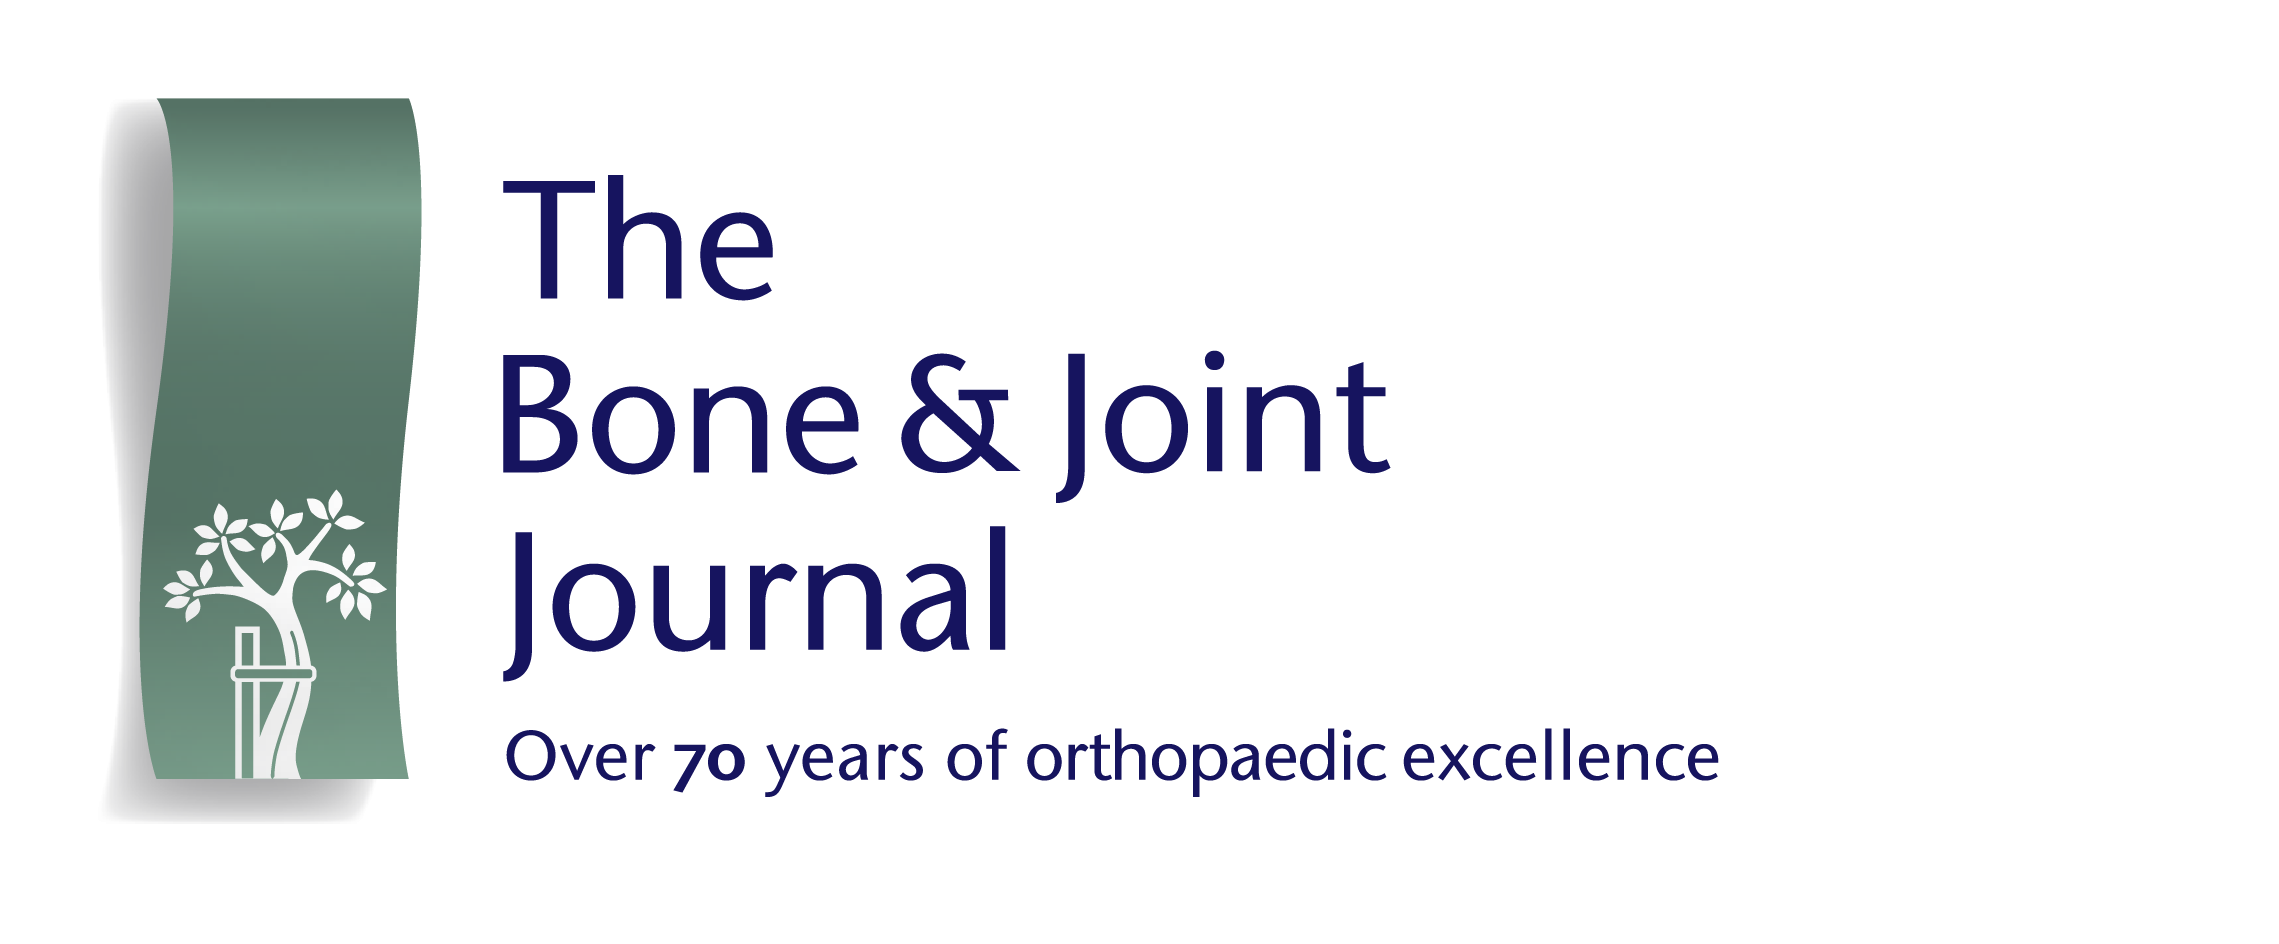 The Bone and Joint Journal